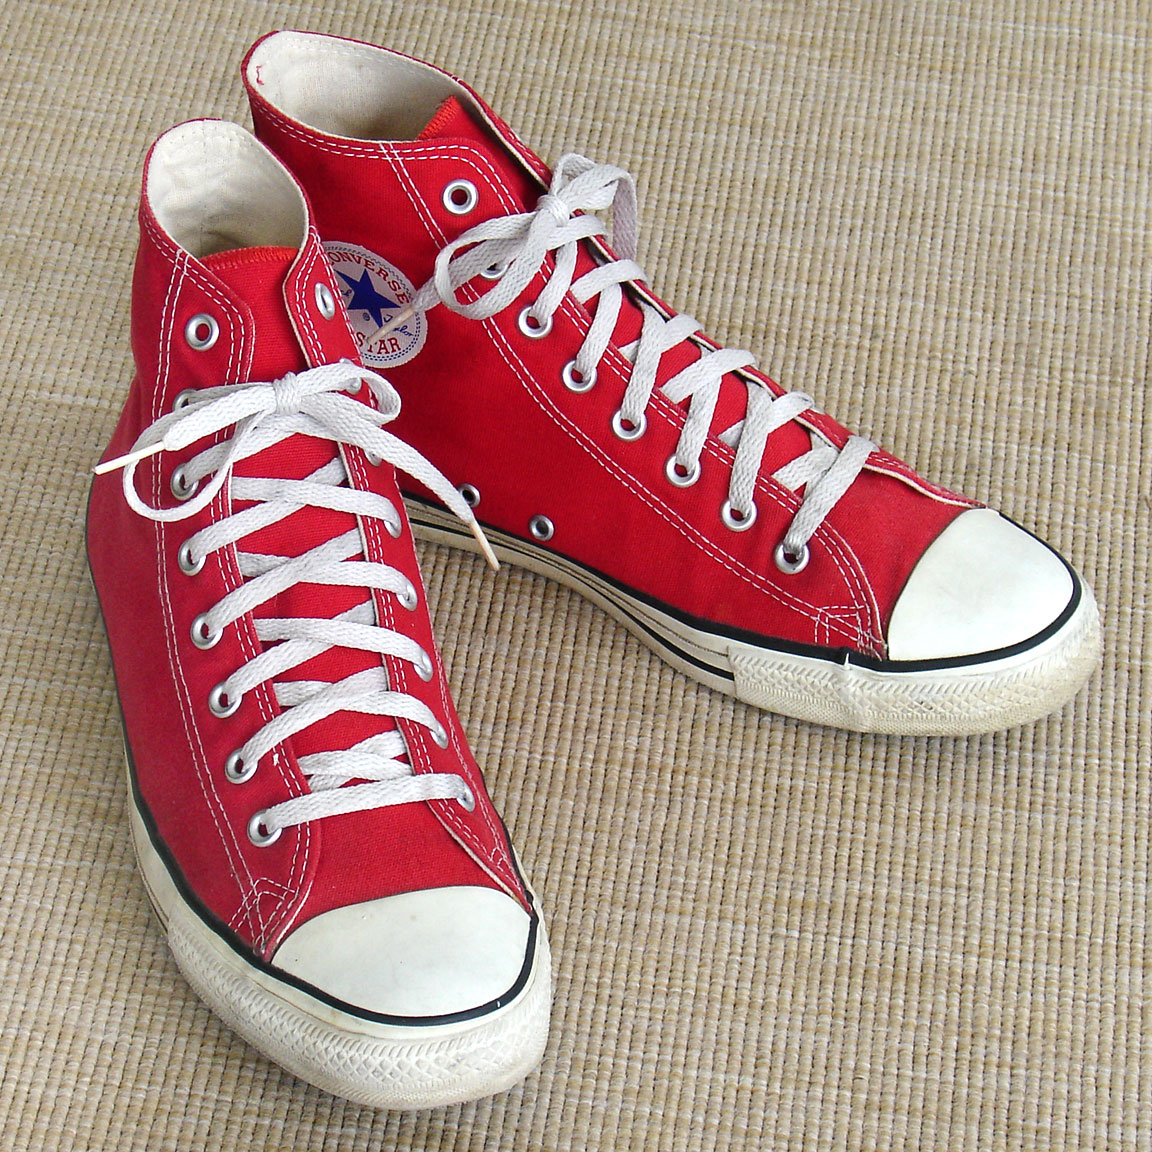 8465560aff62 Vintage red hi-top American-made Converse All Star Chuck Taylor shoes for  sale